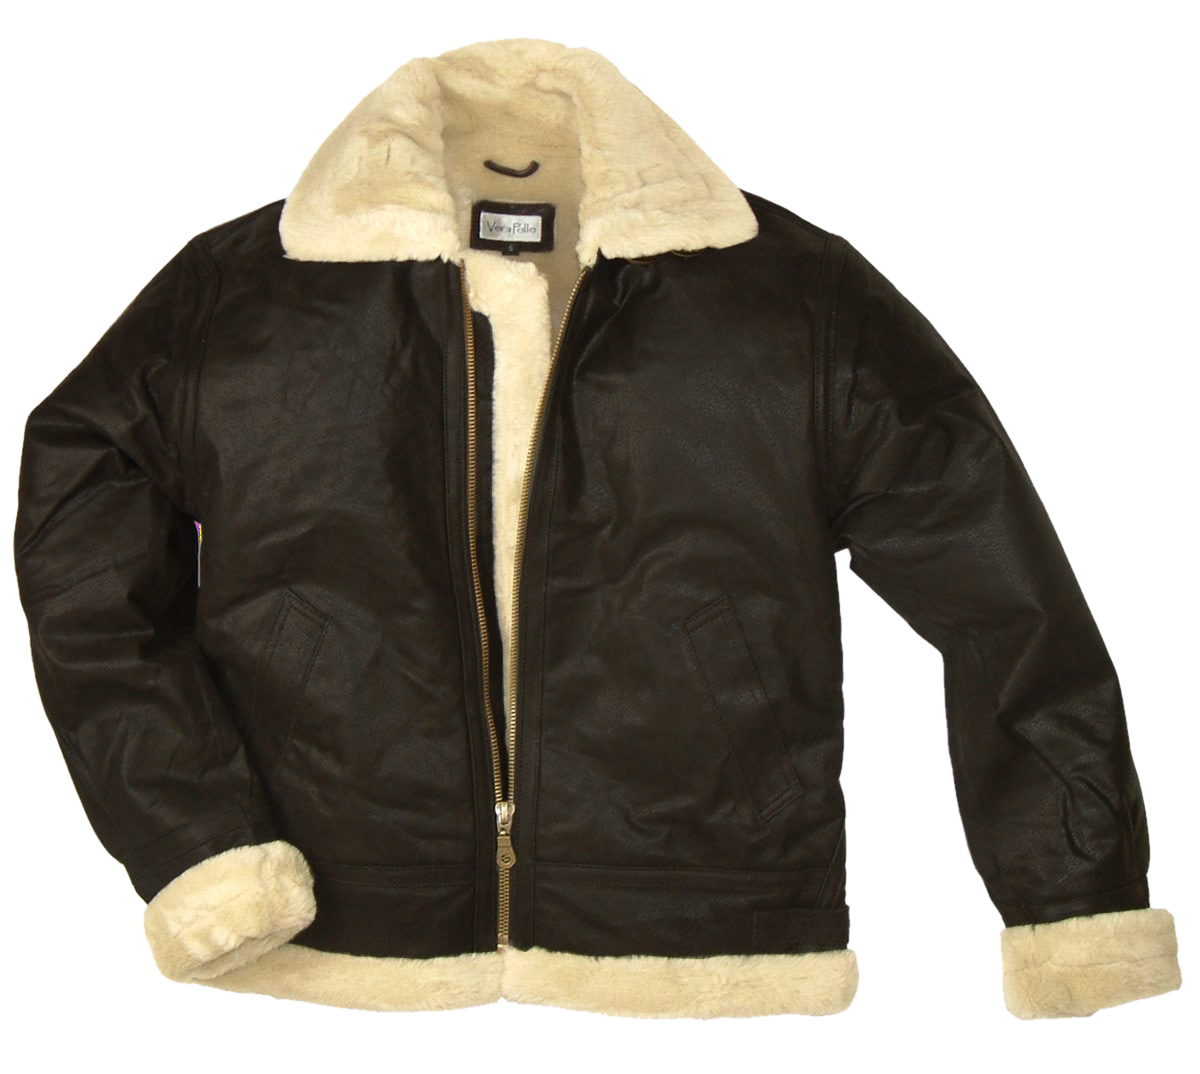 Leather flight jackets for sale